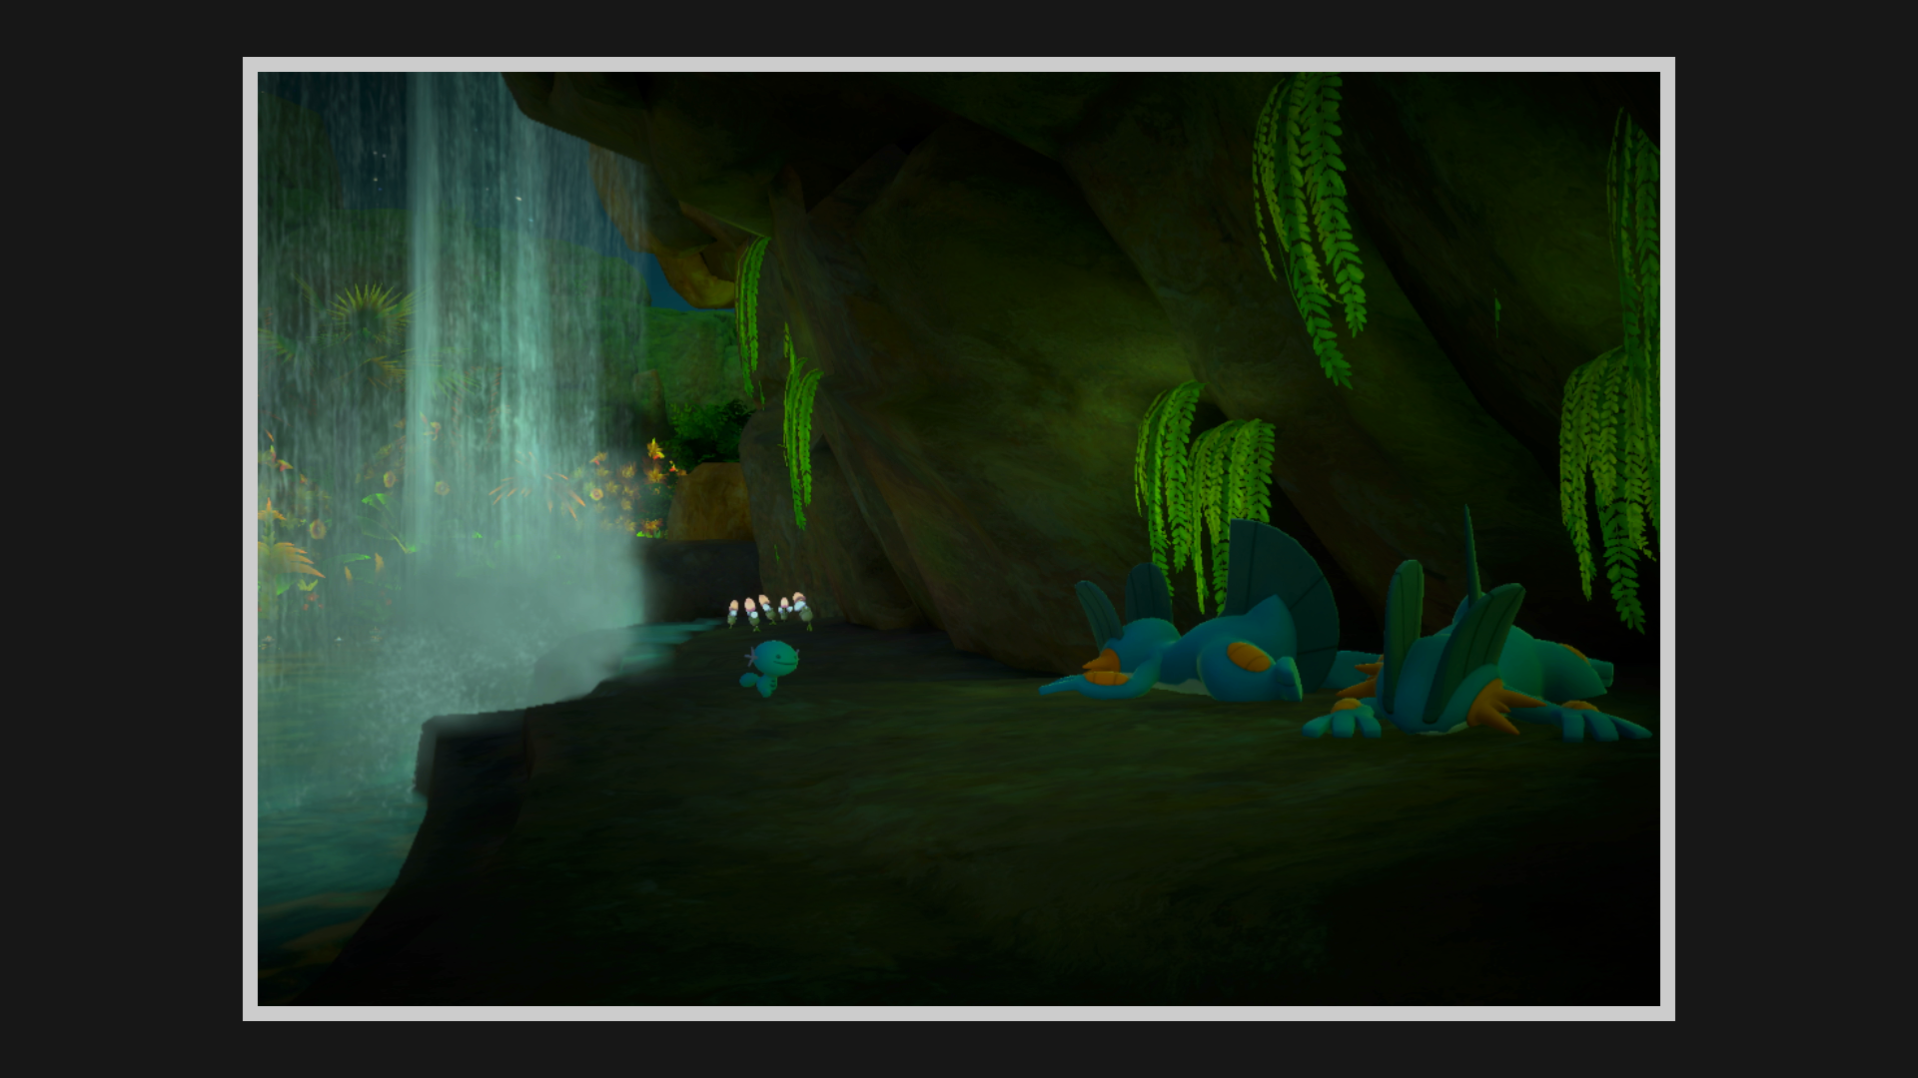 A Wooper, some Morelull, and two sleeping Swampert behind a waterfall